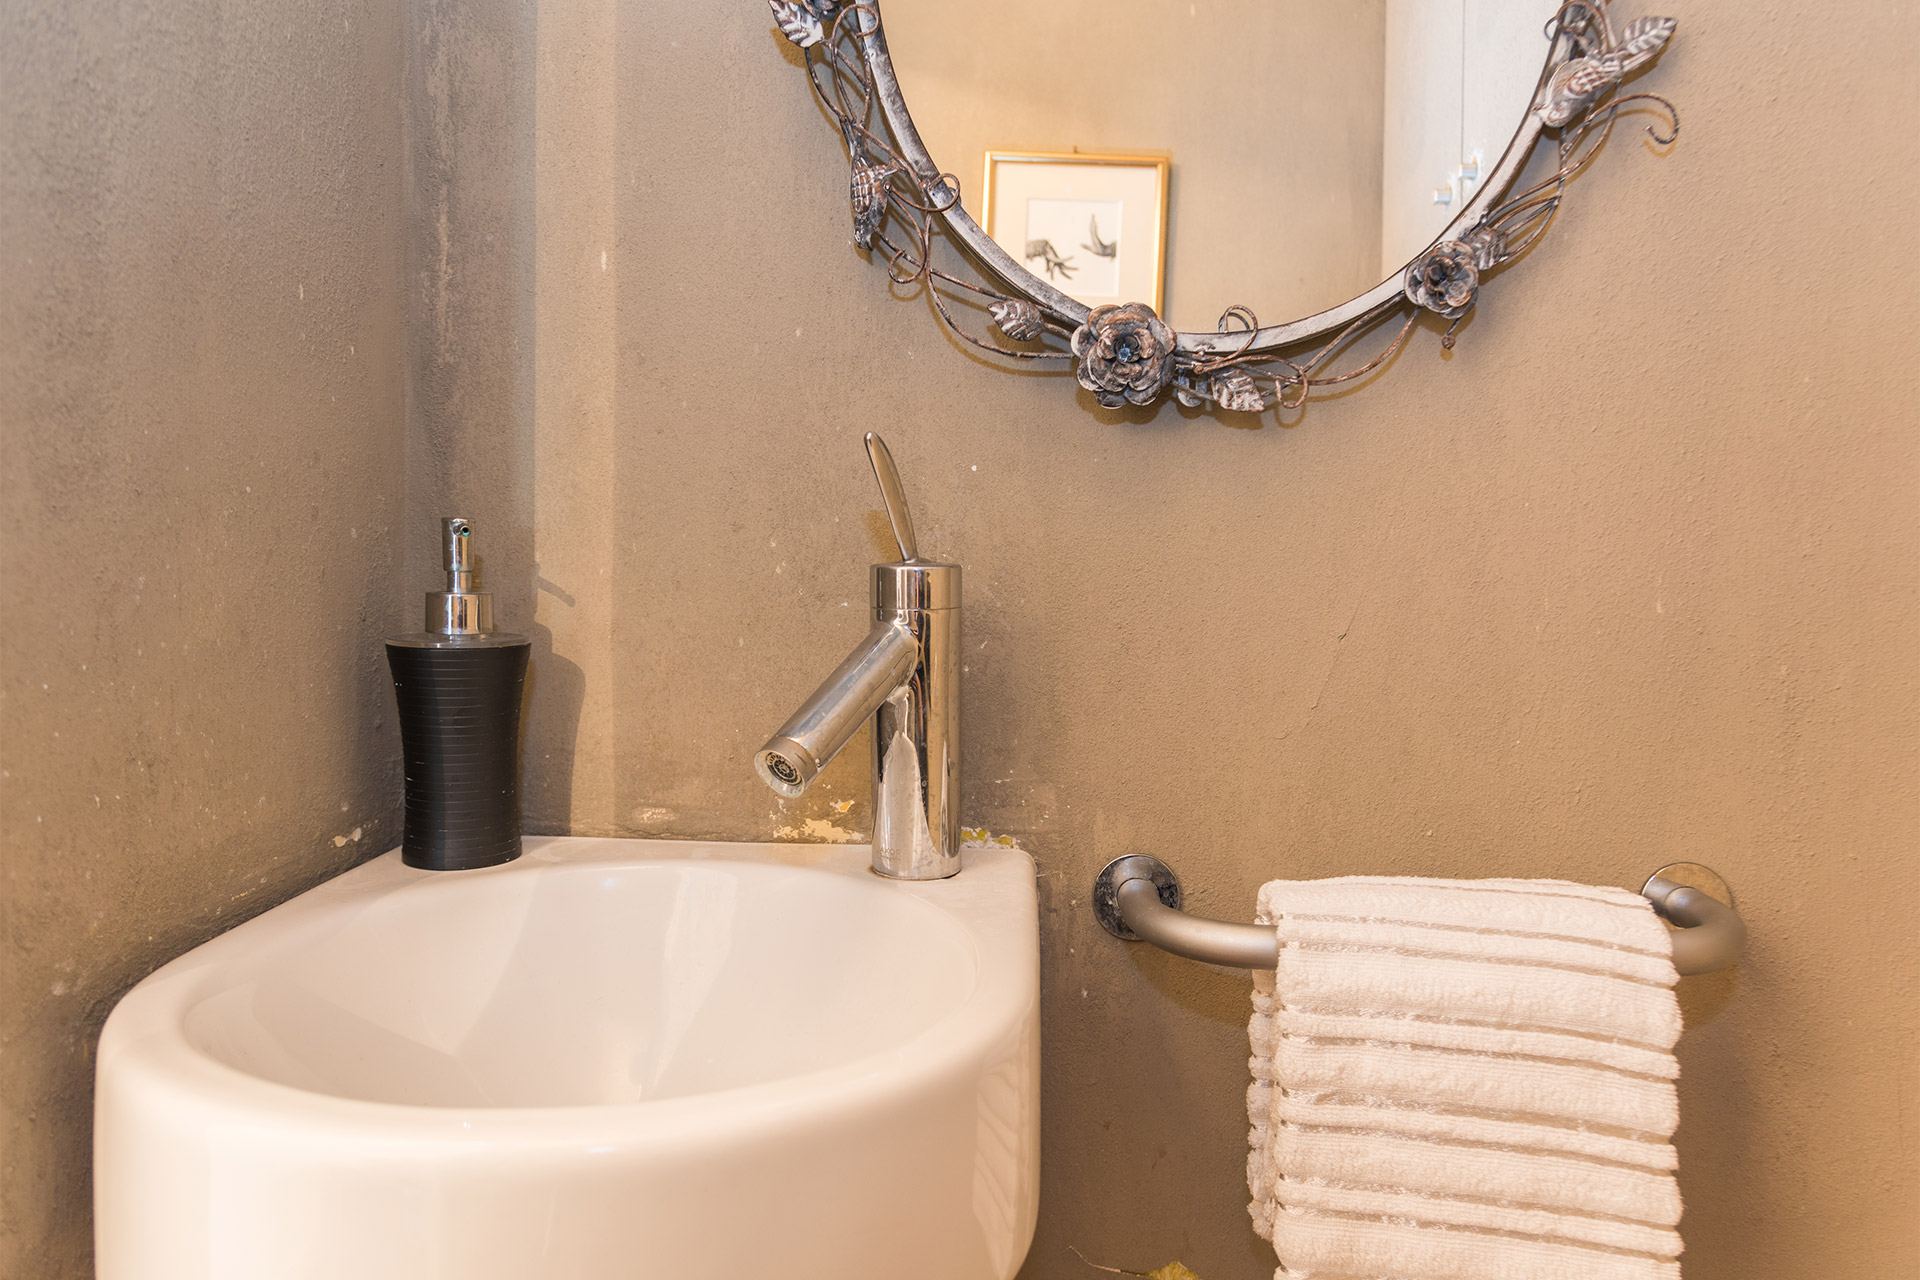 Sink, mirror and towel rack in the Jacquere vacation rental offered by Paris Perfect